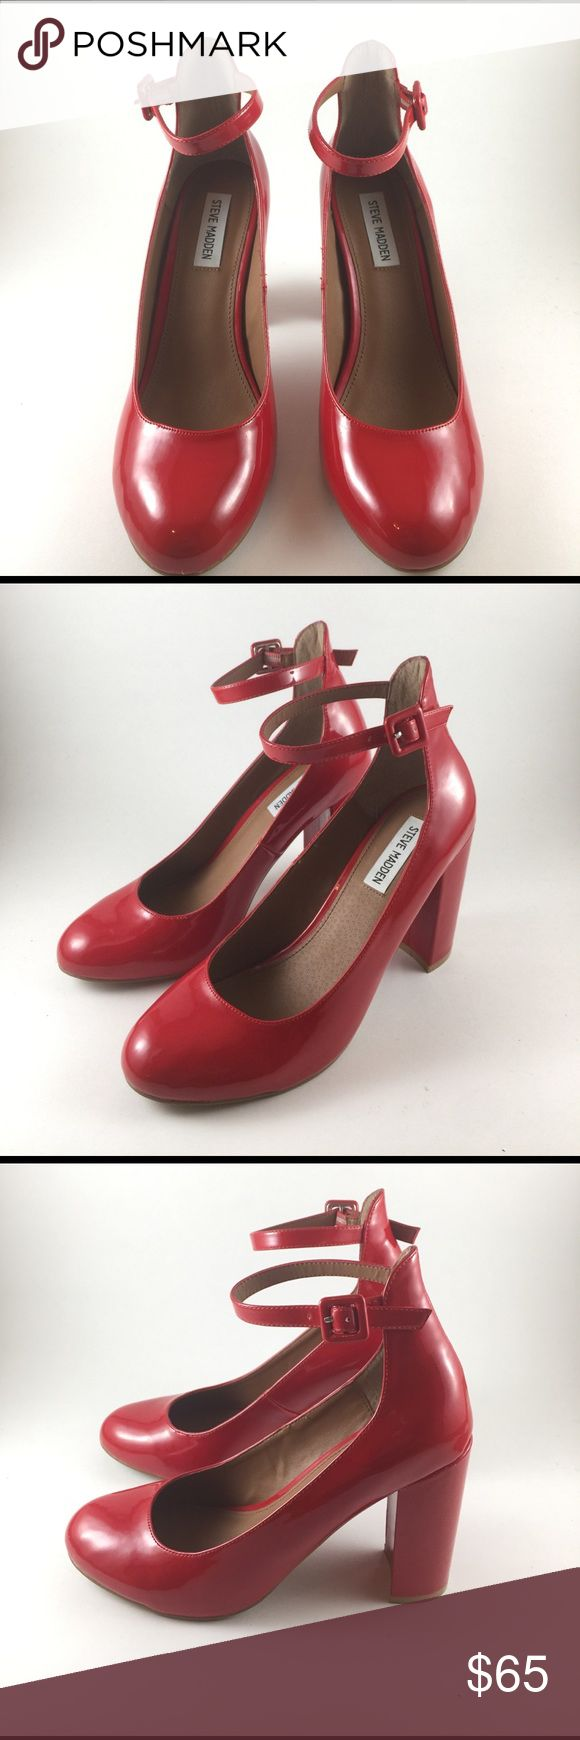 Steve Madden Red Patent chunky high heel New Steve Madden Red Patent chunky high heel (used only as display). Steve Madden Shoes Heels